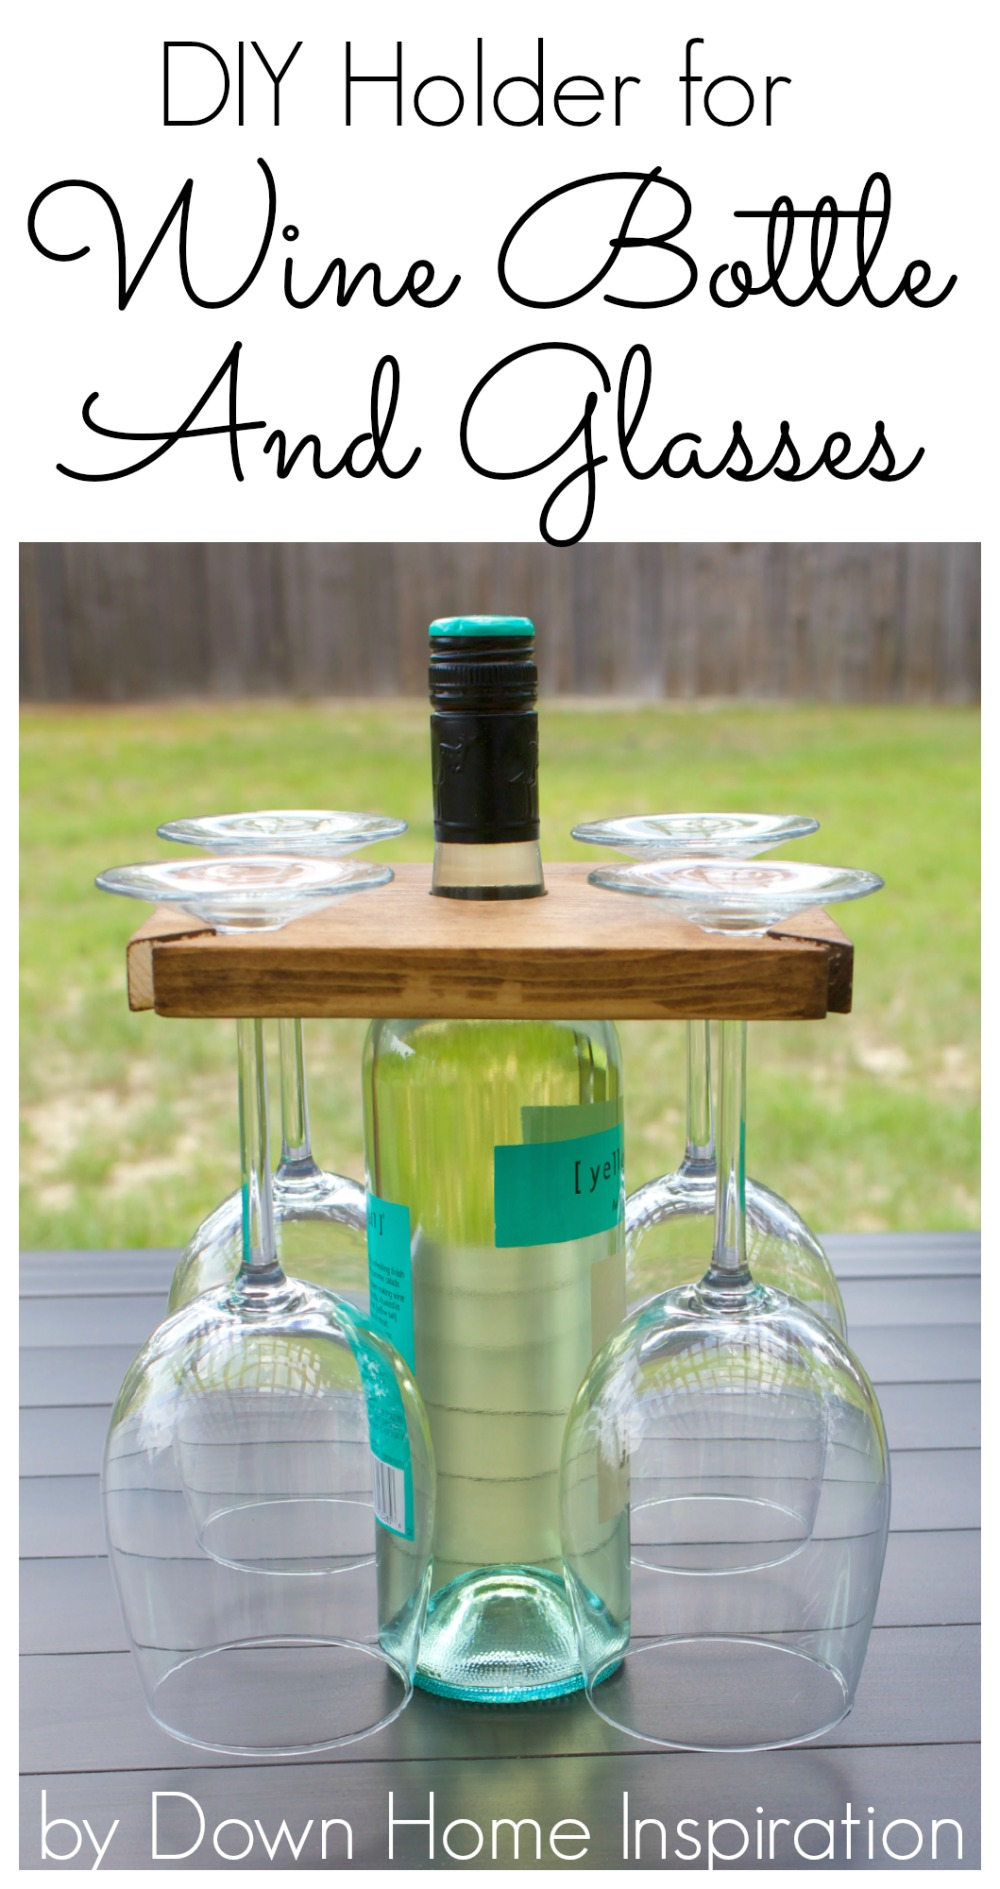 How To Make A Diy Holder For A Wine Bottle And Glasses Down Home Inspiration